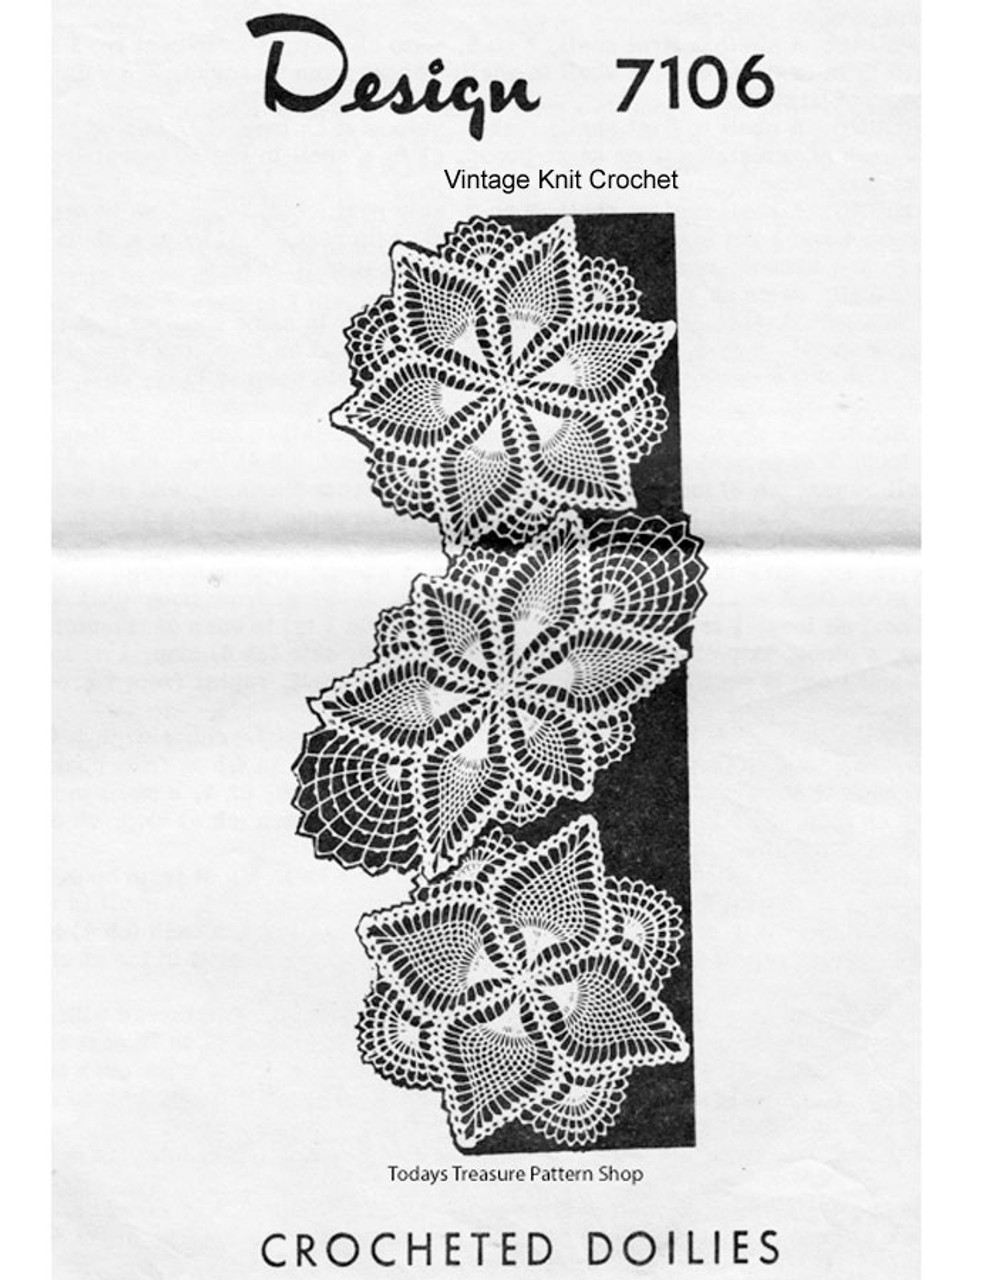 Small Crocheted Pineapple Doilies Pattern Design 7106